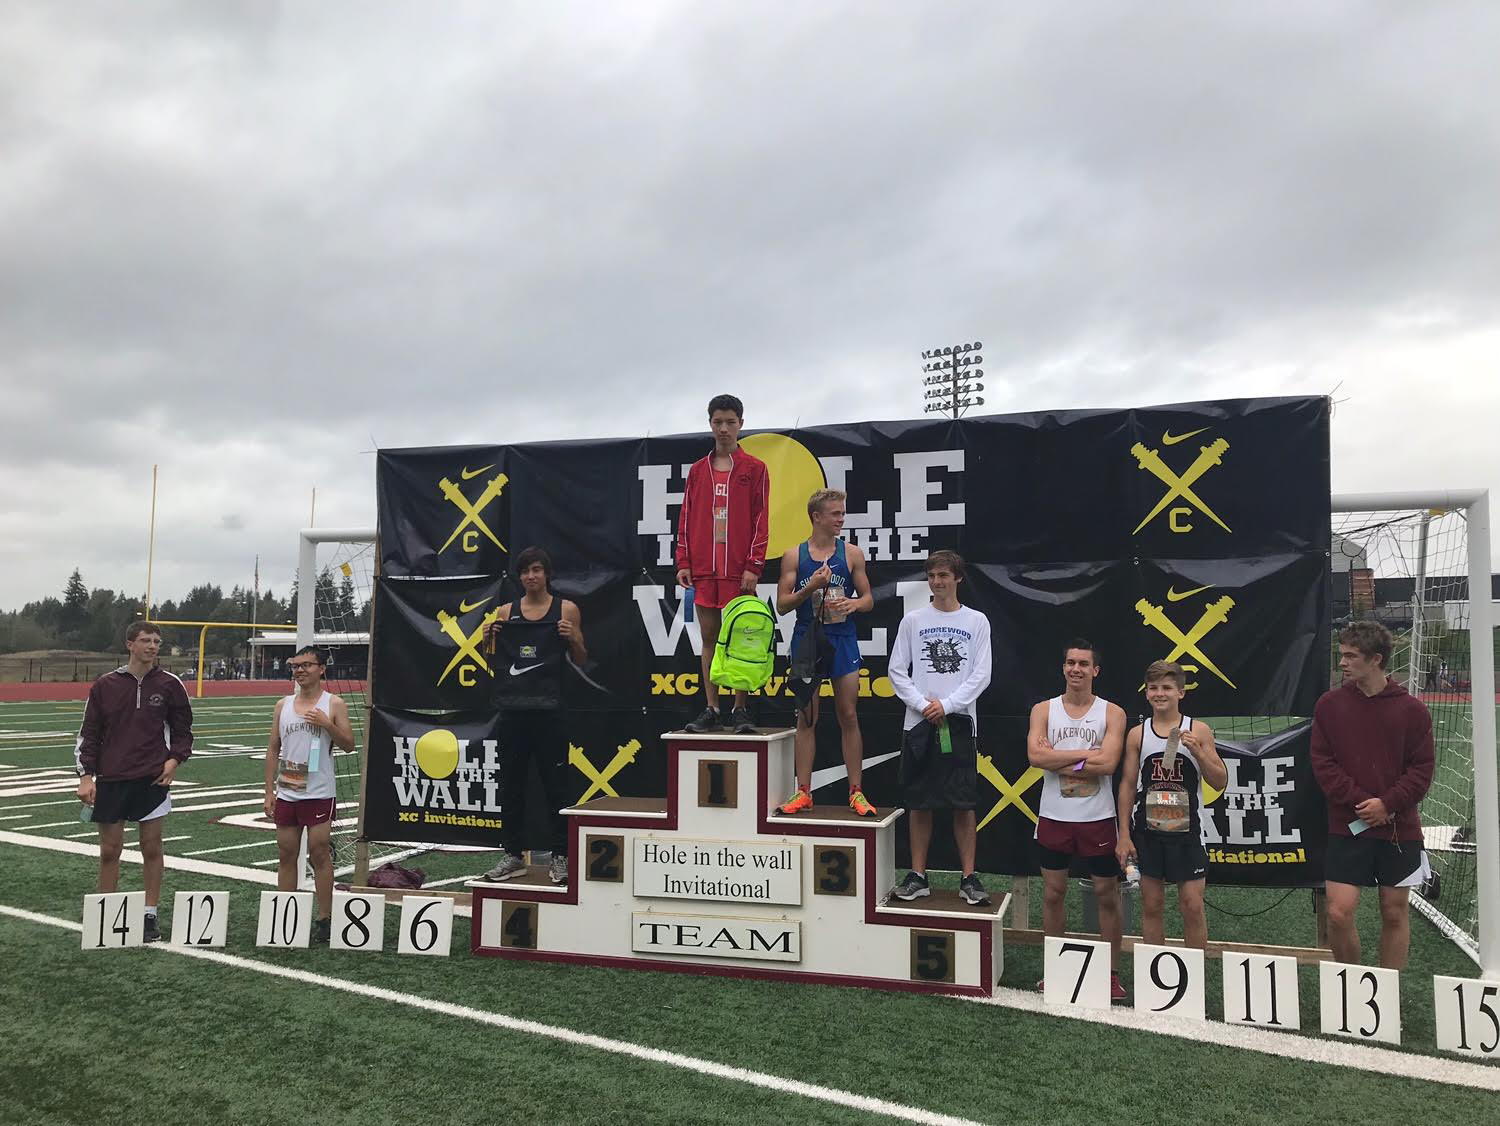 Junior Quentin Lowe, center, stands on top of the Hole in the Wall Invitational podium holding his prizes, a Nike backpack and a 1st place medal on Oct. 7.